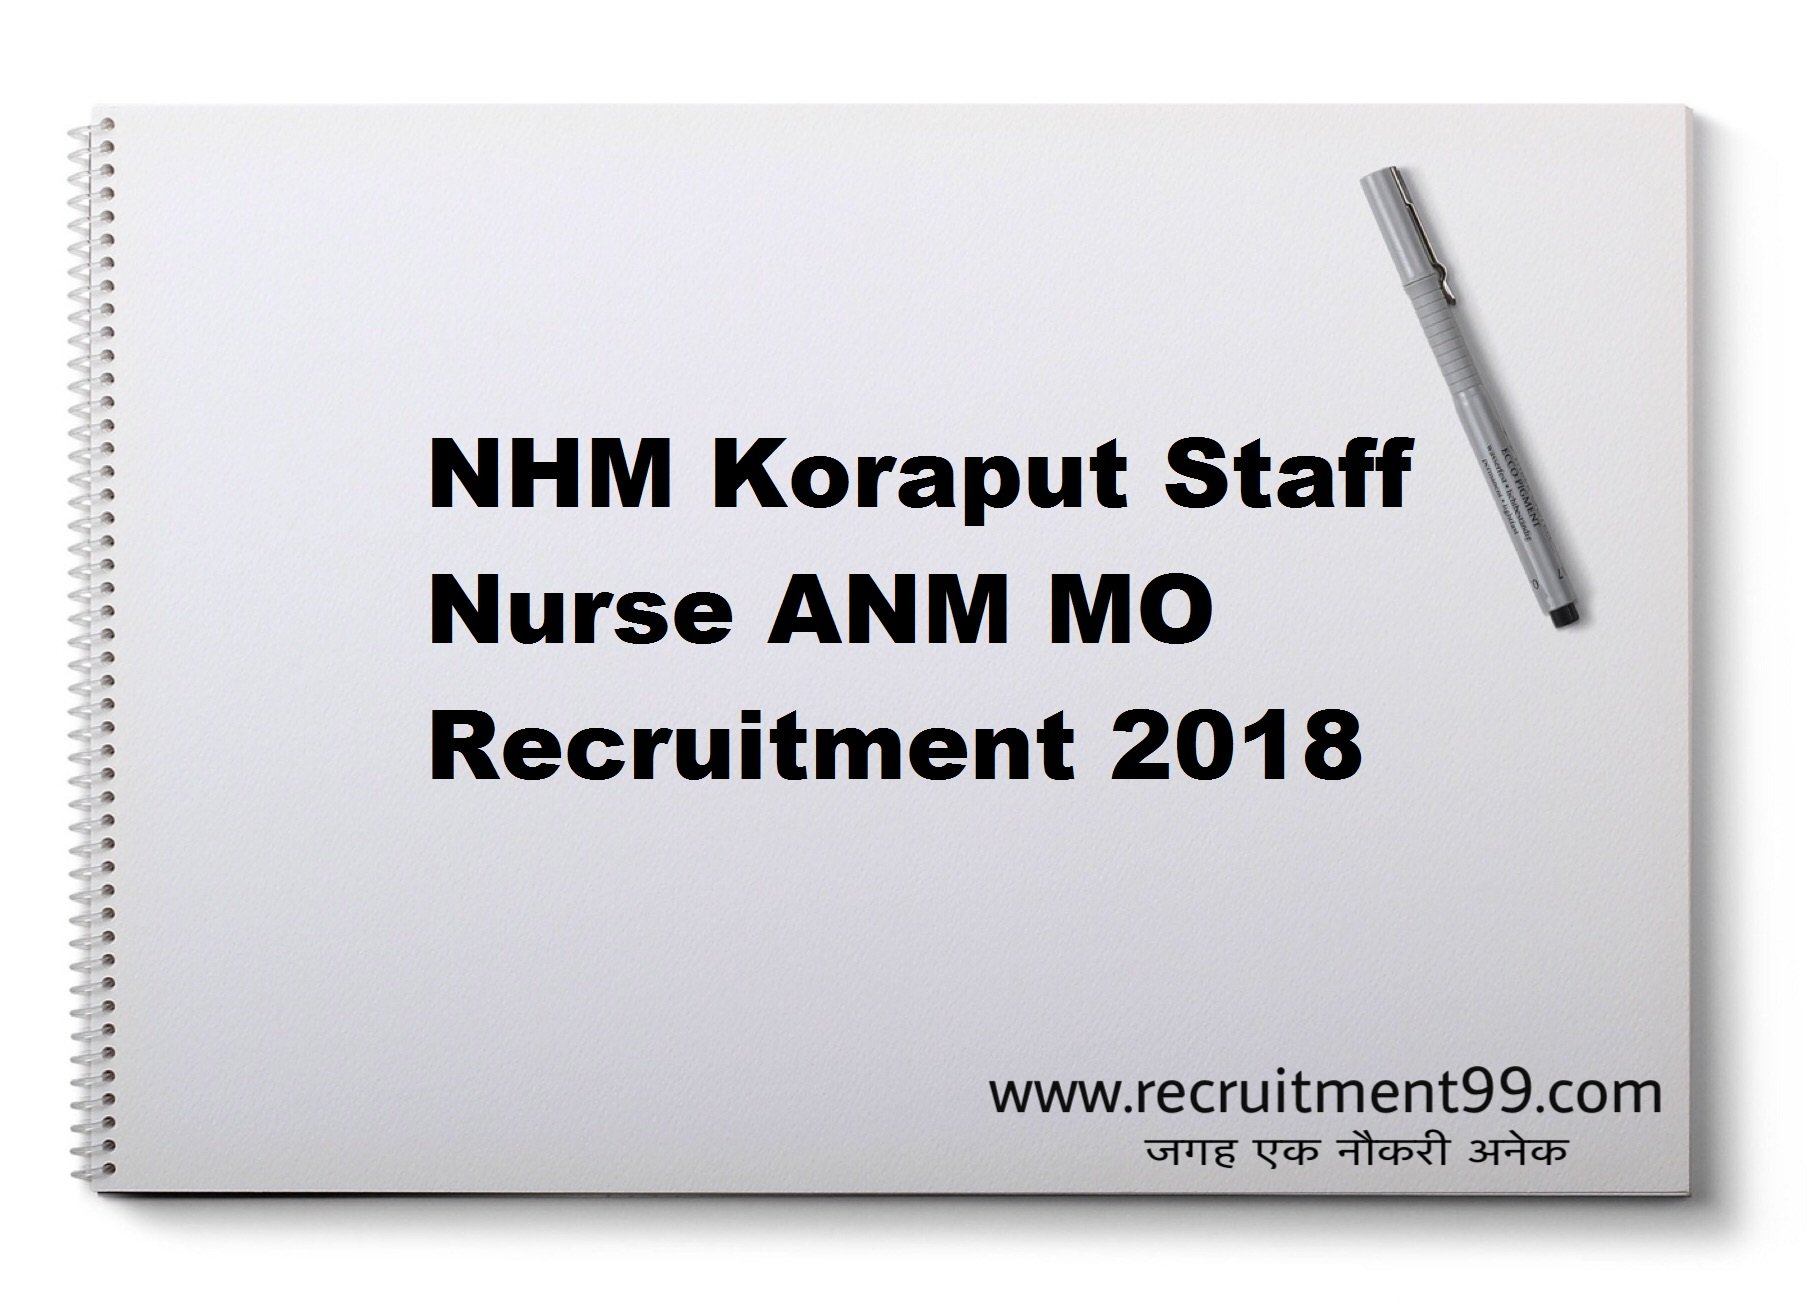 NHM Koraput Staff Nurse ANM MO Recruitment Admit Card Result 2018